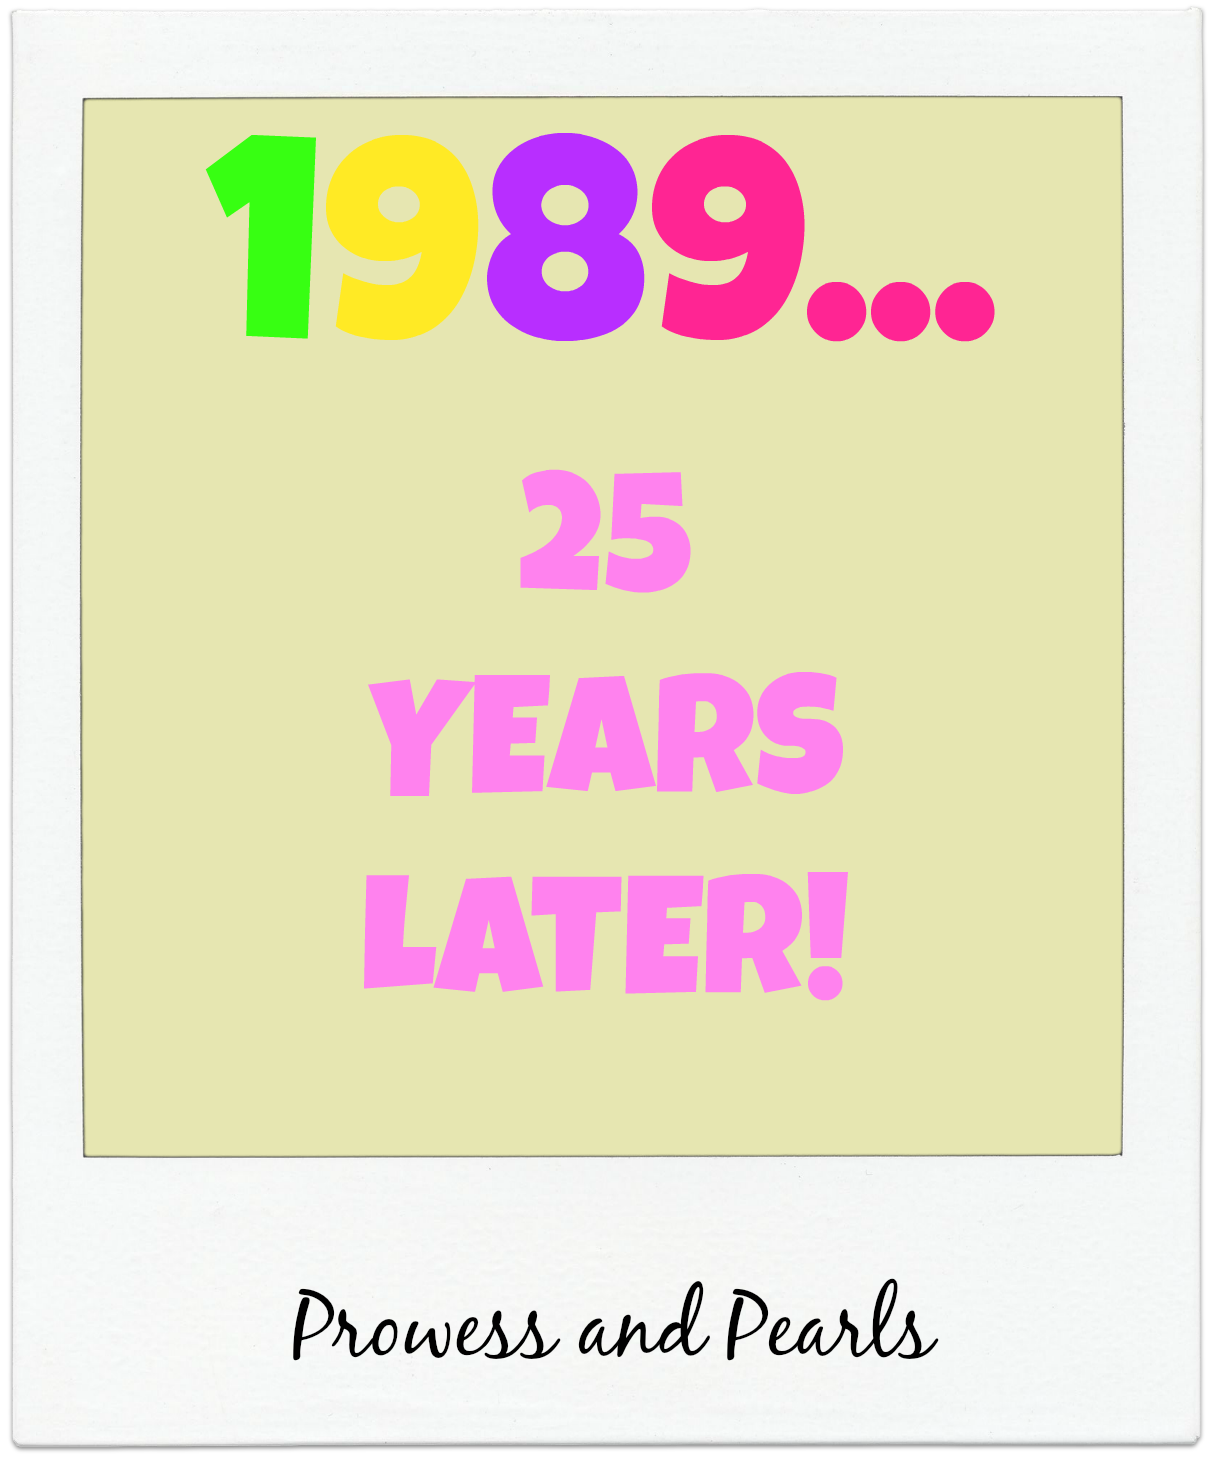 Anniversary Quotes Quotesgram: 25 Year Employee Anniversary Quotes. QuotesGram